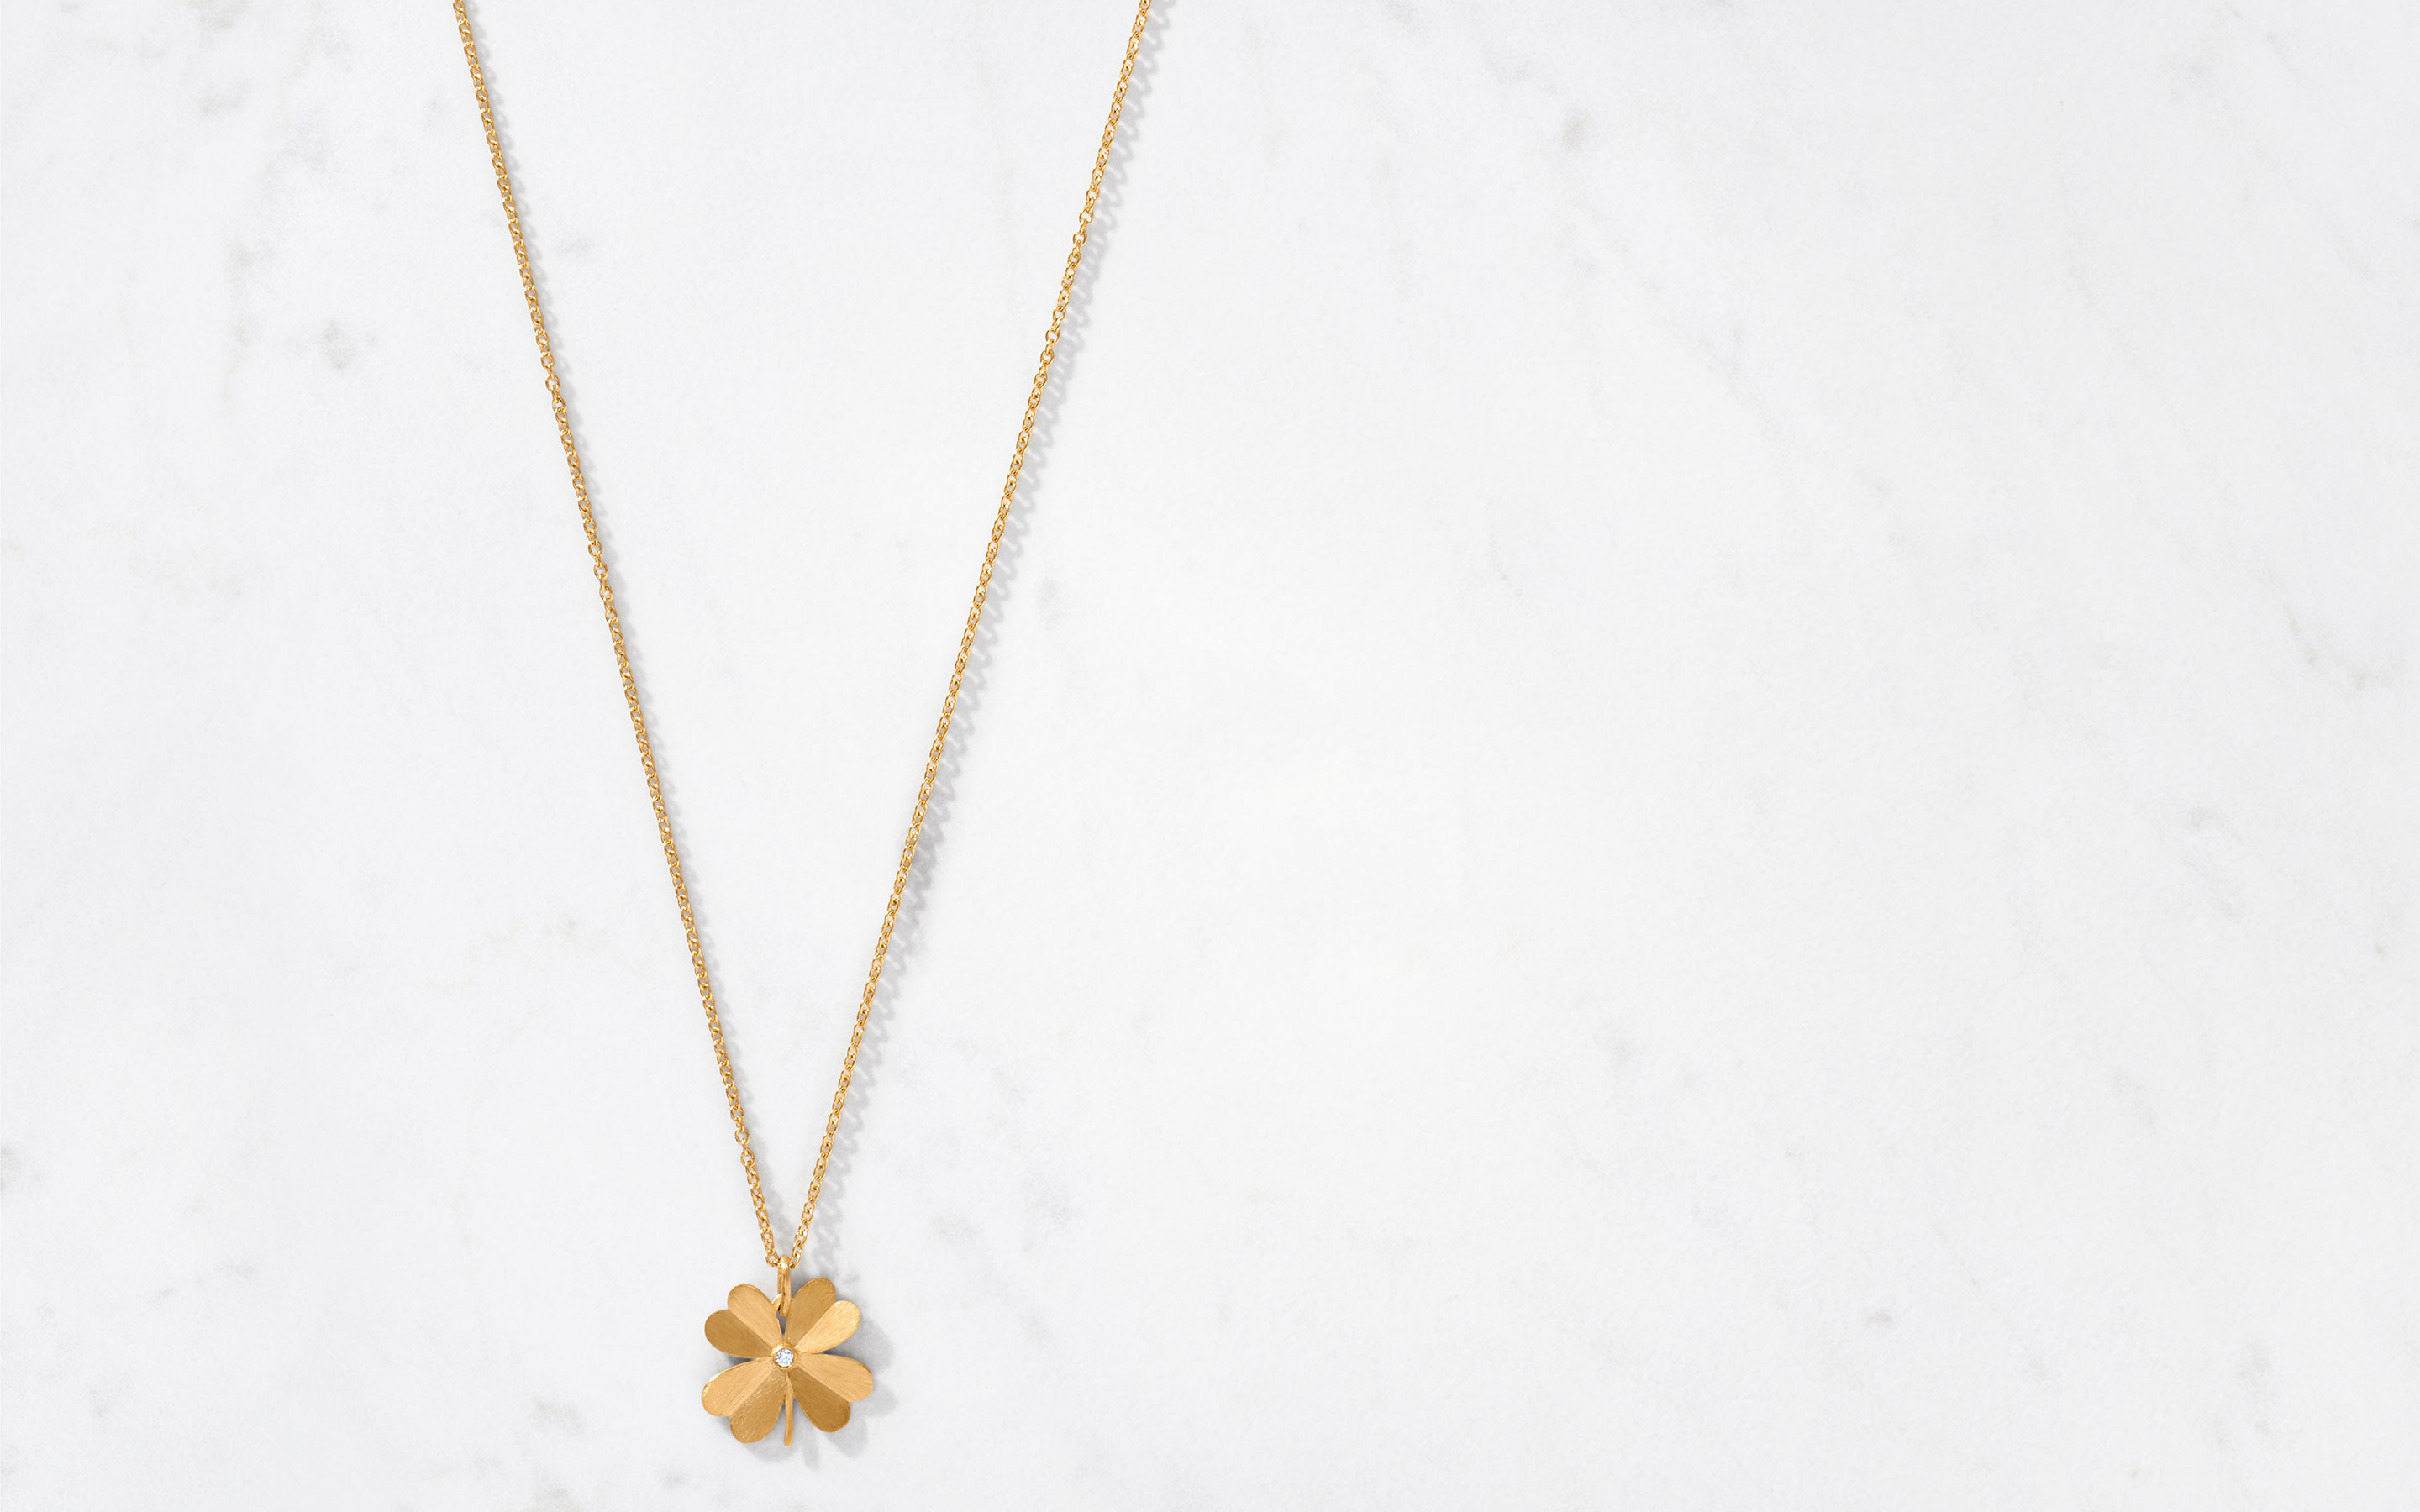 handcrafted 22 karat clover satin necklace with a marvelous center round cut diamond